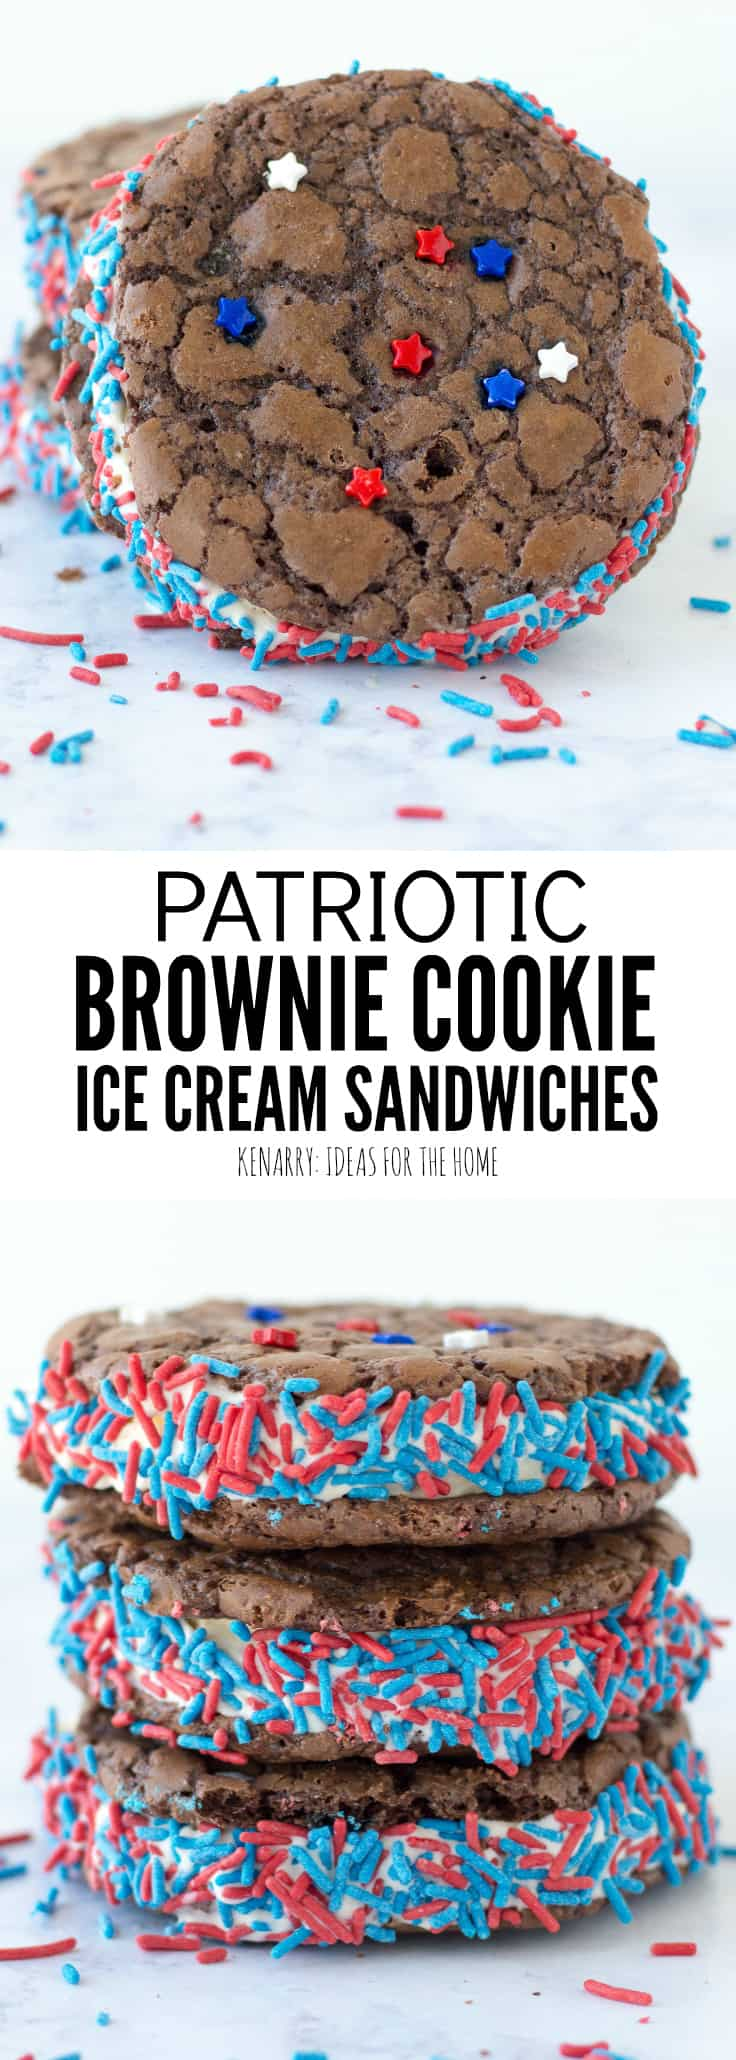 Learn how to turn a brownie mix into cookies to make the most amazing brownie ice cream sandwich recipe for summer. This easy patriotic dessert is the perfect red, white and blue chocolate treat for 4th of July, Memorial Day and Labor Day. #4thofjuly #summerrecipes #memorialday #brownies